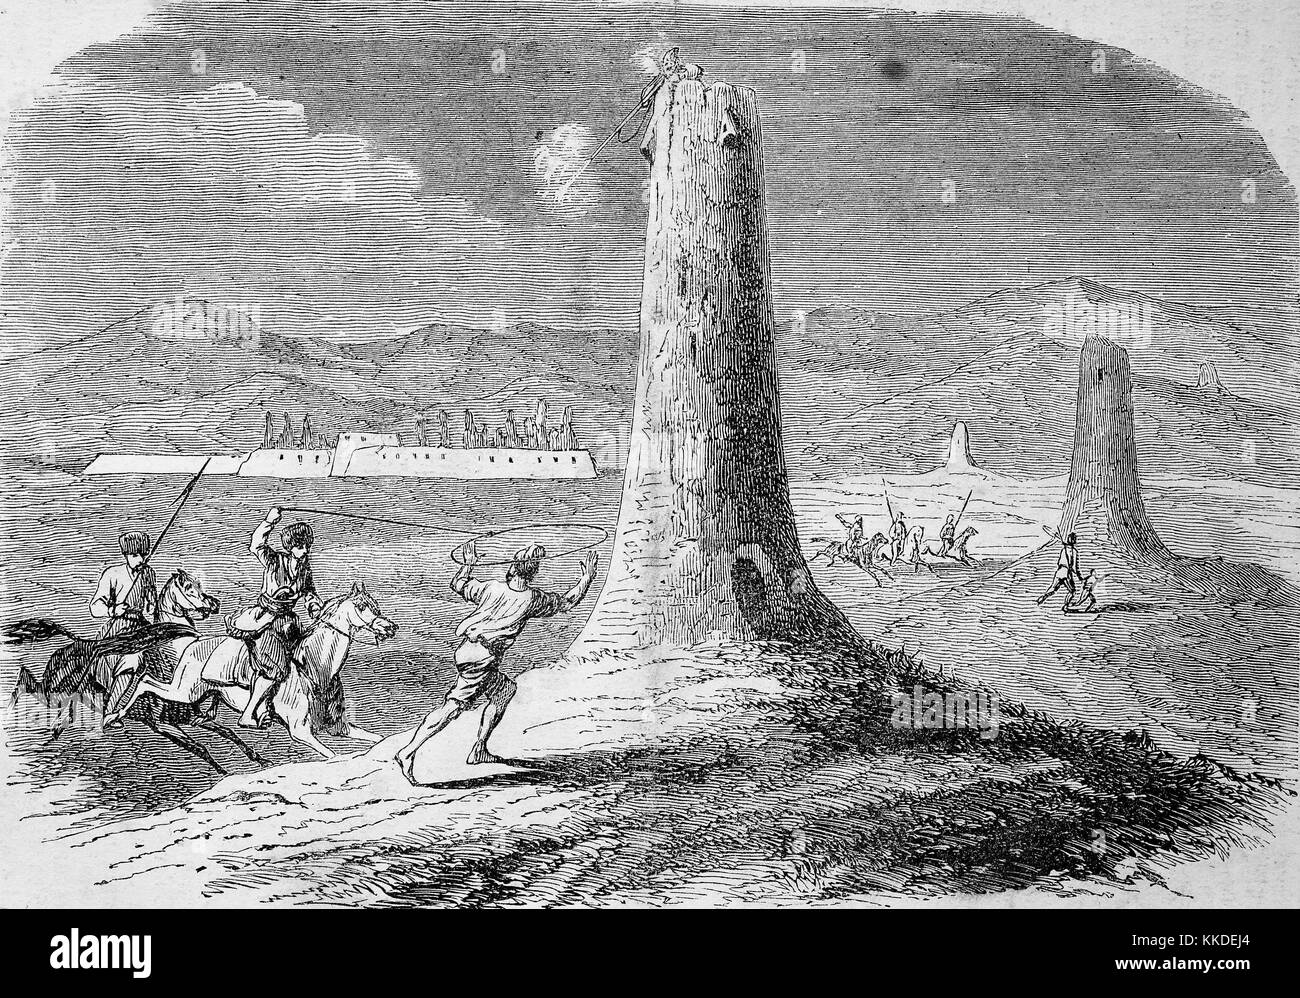 Persecution of the Persians by the Turkomans, pictures of the time of 1855, Digital improved reproduction of an - Stock Image